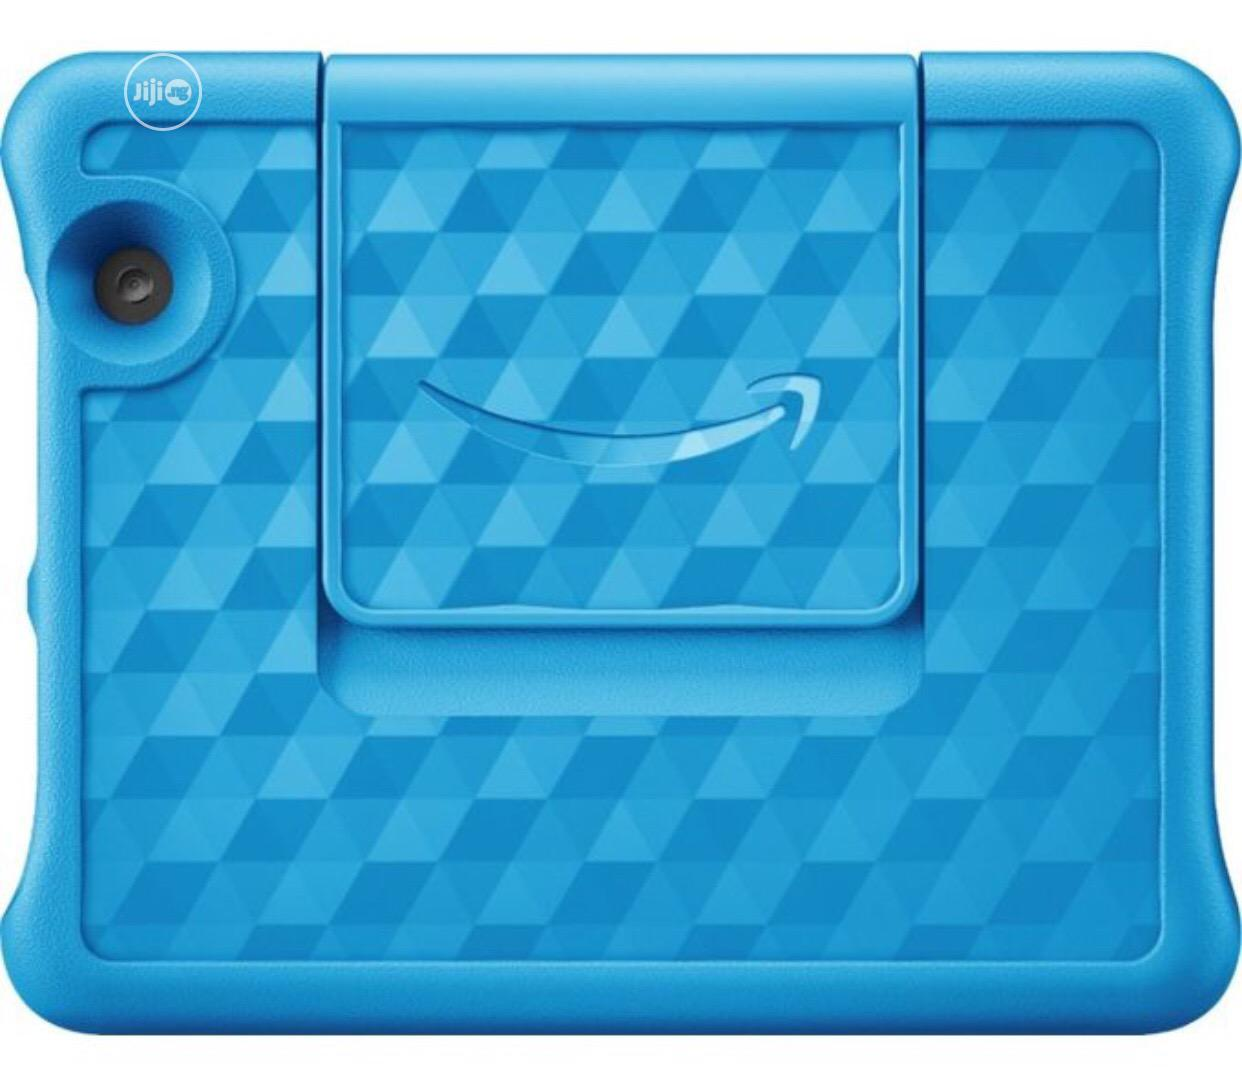 New Amazon Fire HD 8 32 GB Blue | Tablets for sale in Ikeja, Lagos State, Nigeria